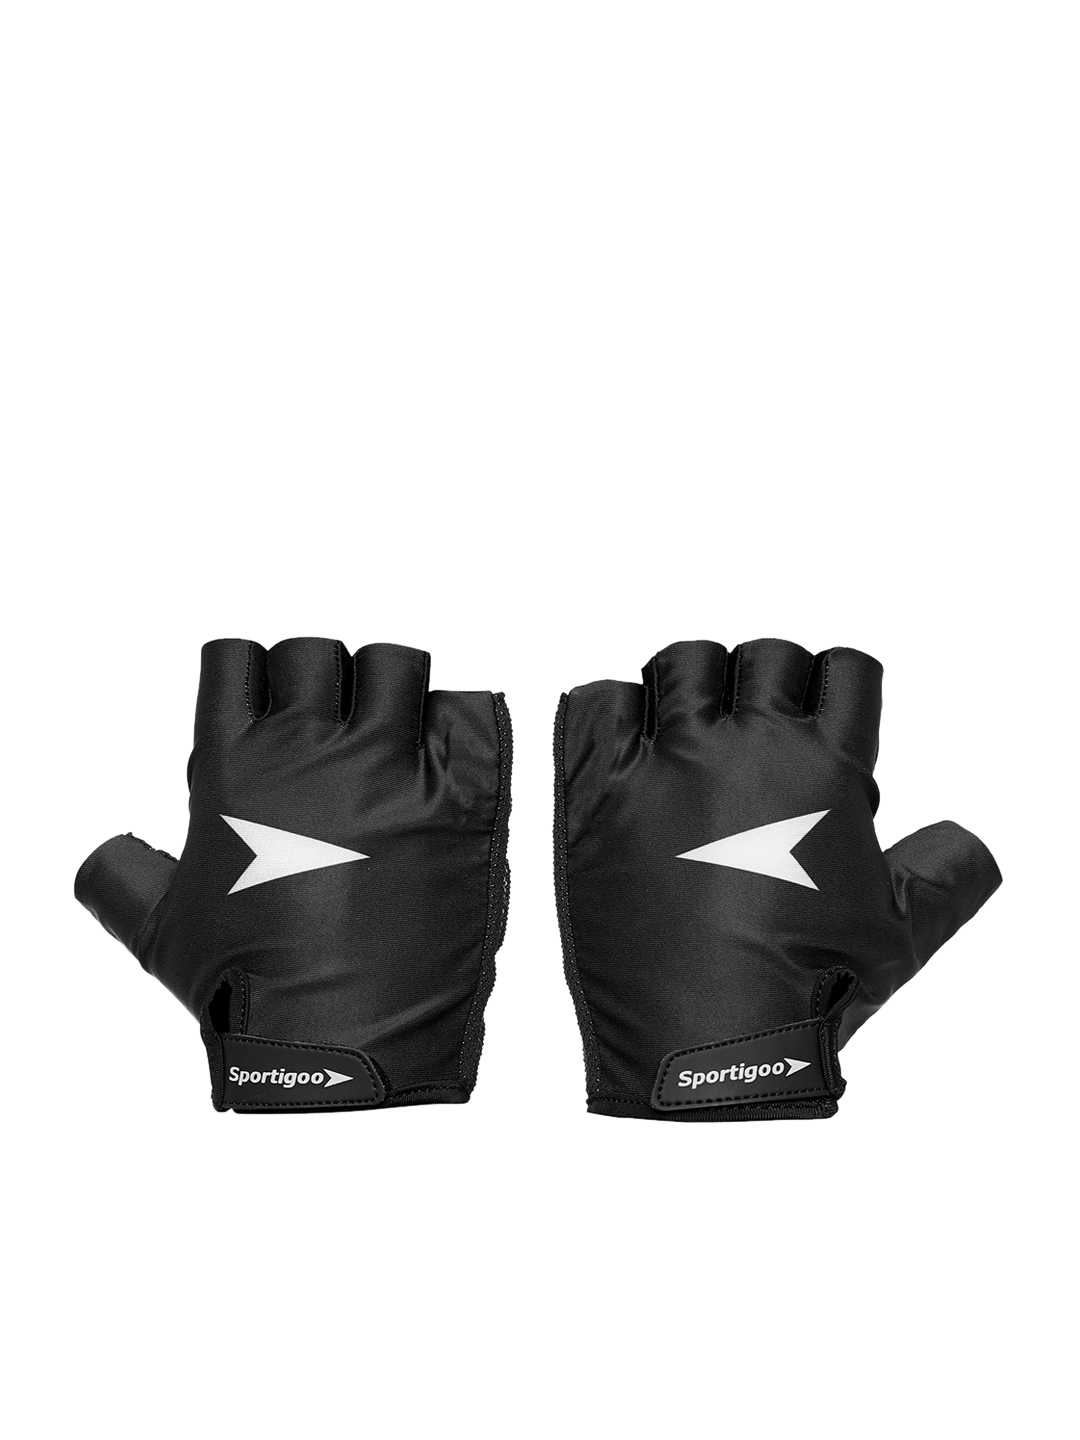 Sportigoo Men Black   White Vent X Gym   Fitness Gloves